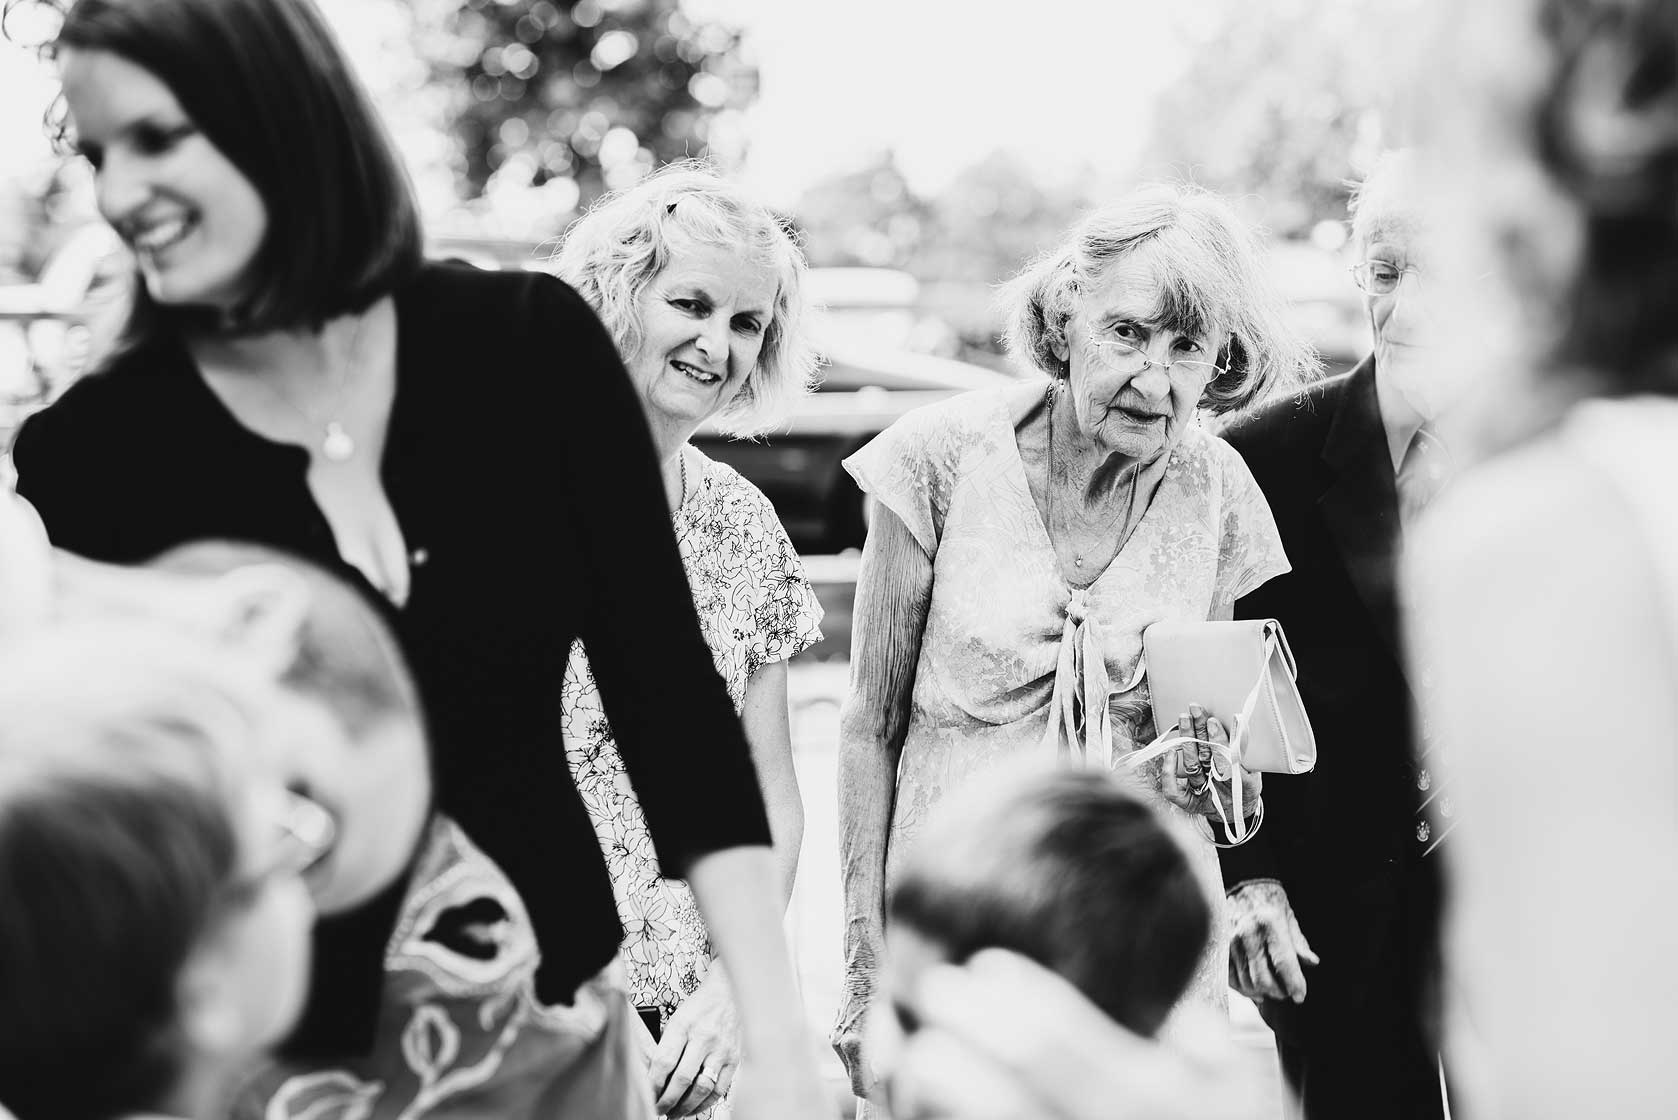 Reportage Wedding Photography at Eltham College